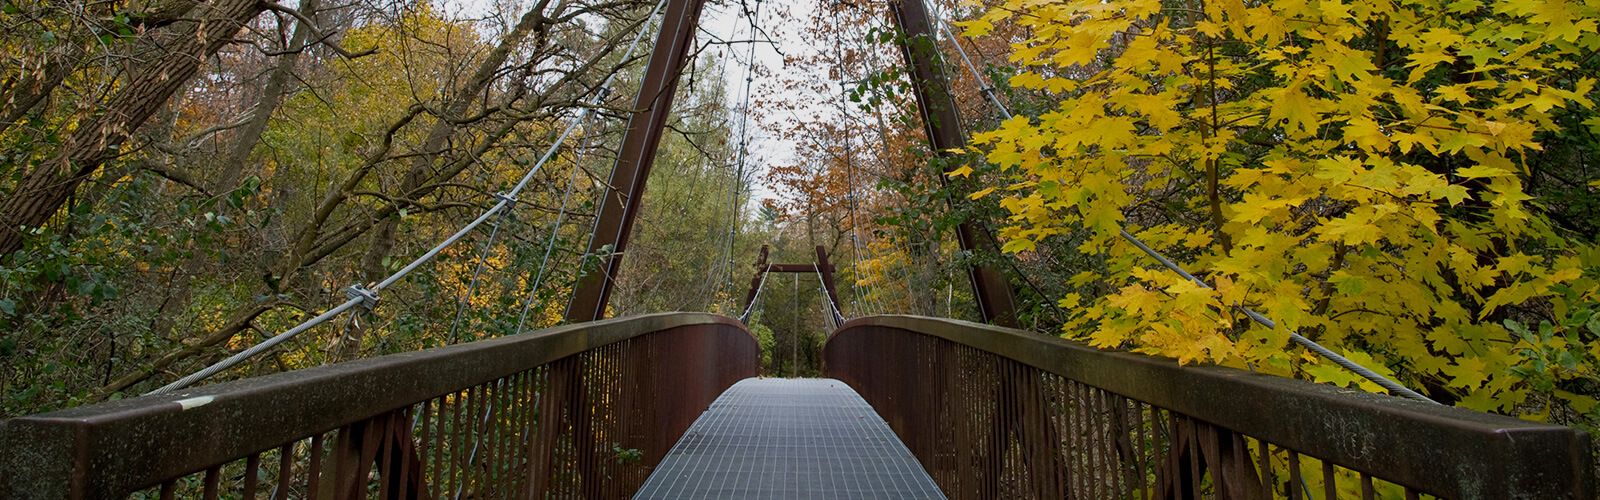 Suspension pedestrian bridge leads from the foreground into the background, surrounded by lush forest fall trees on either side.